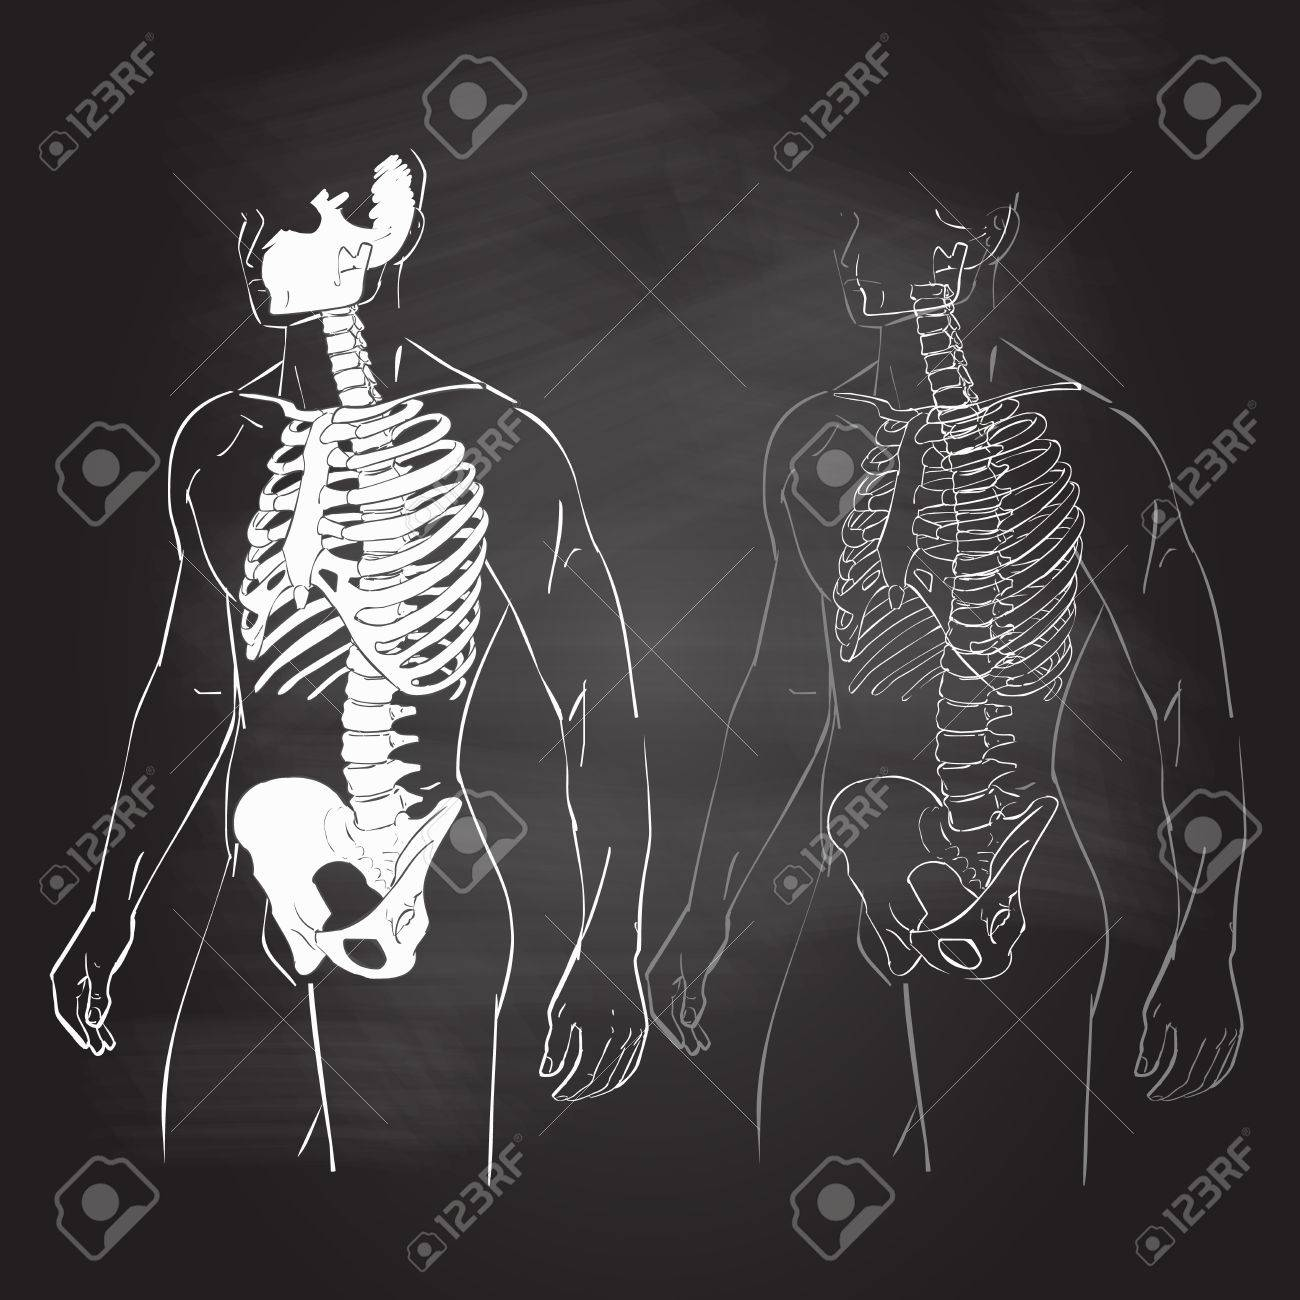 Human Body Parts Skeletal Man Anatomy Illustration Chalk Drawing ...